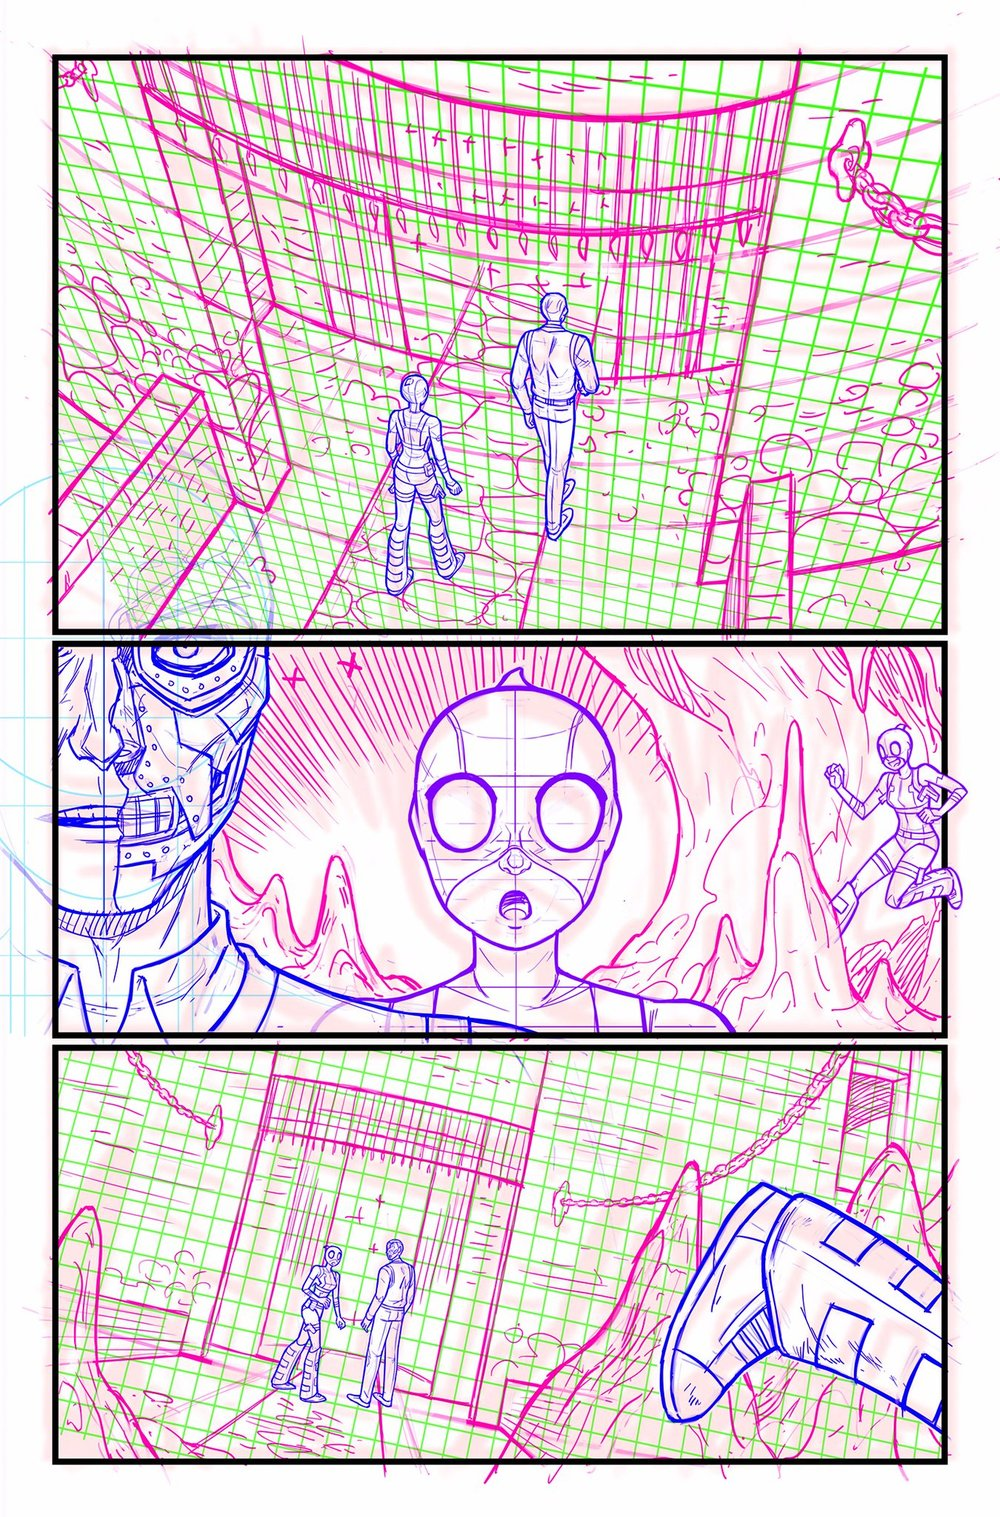 Gwenpool_Pencils_1.jpg